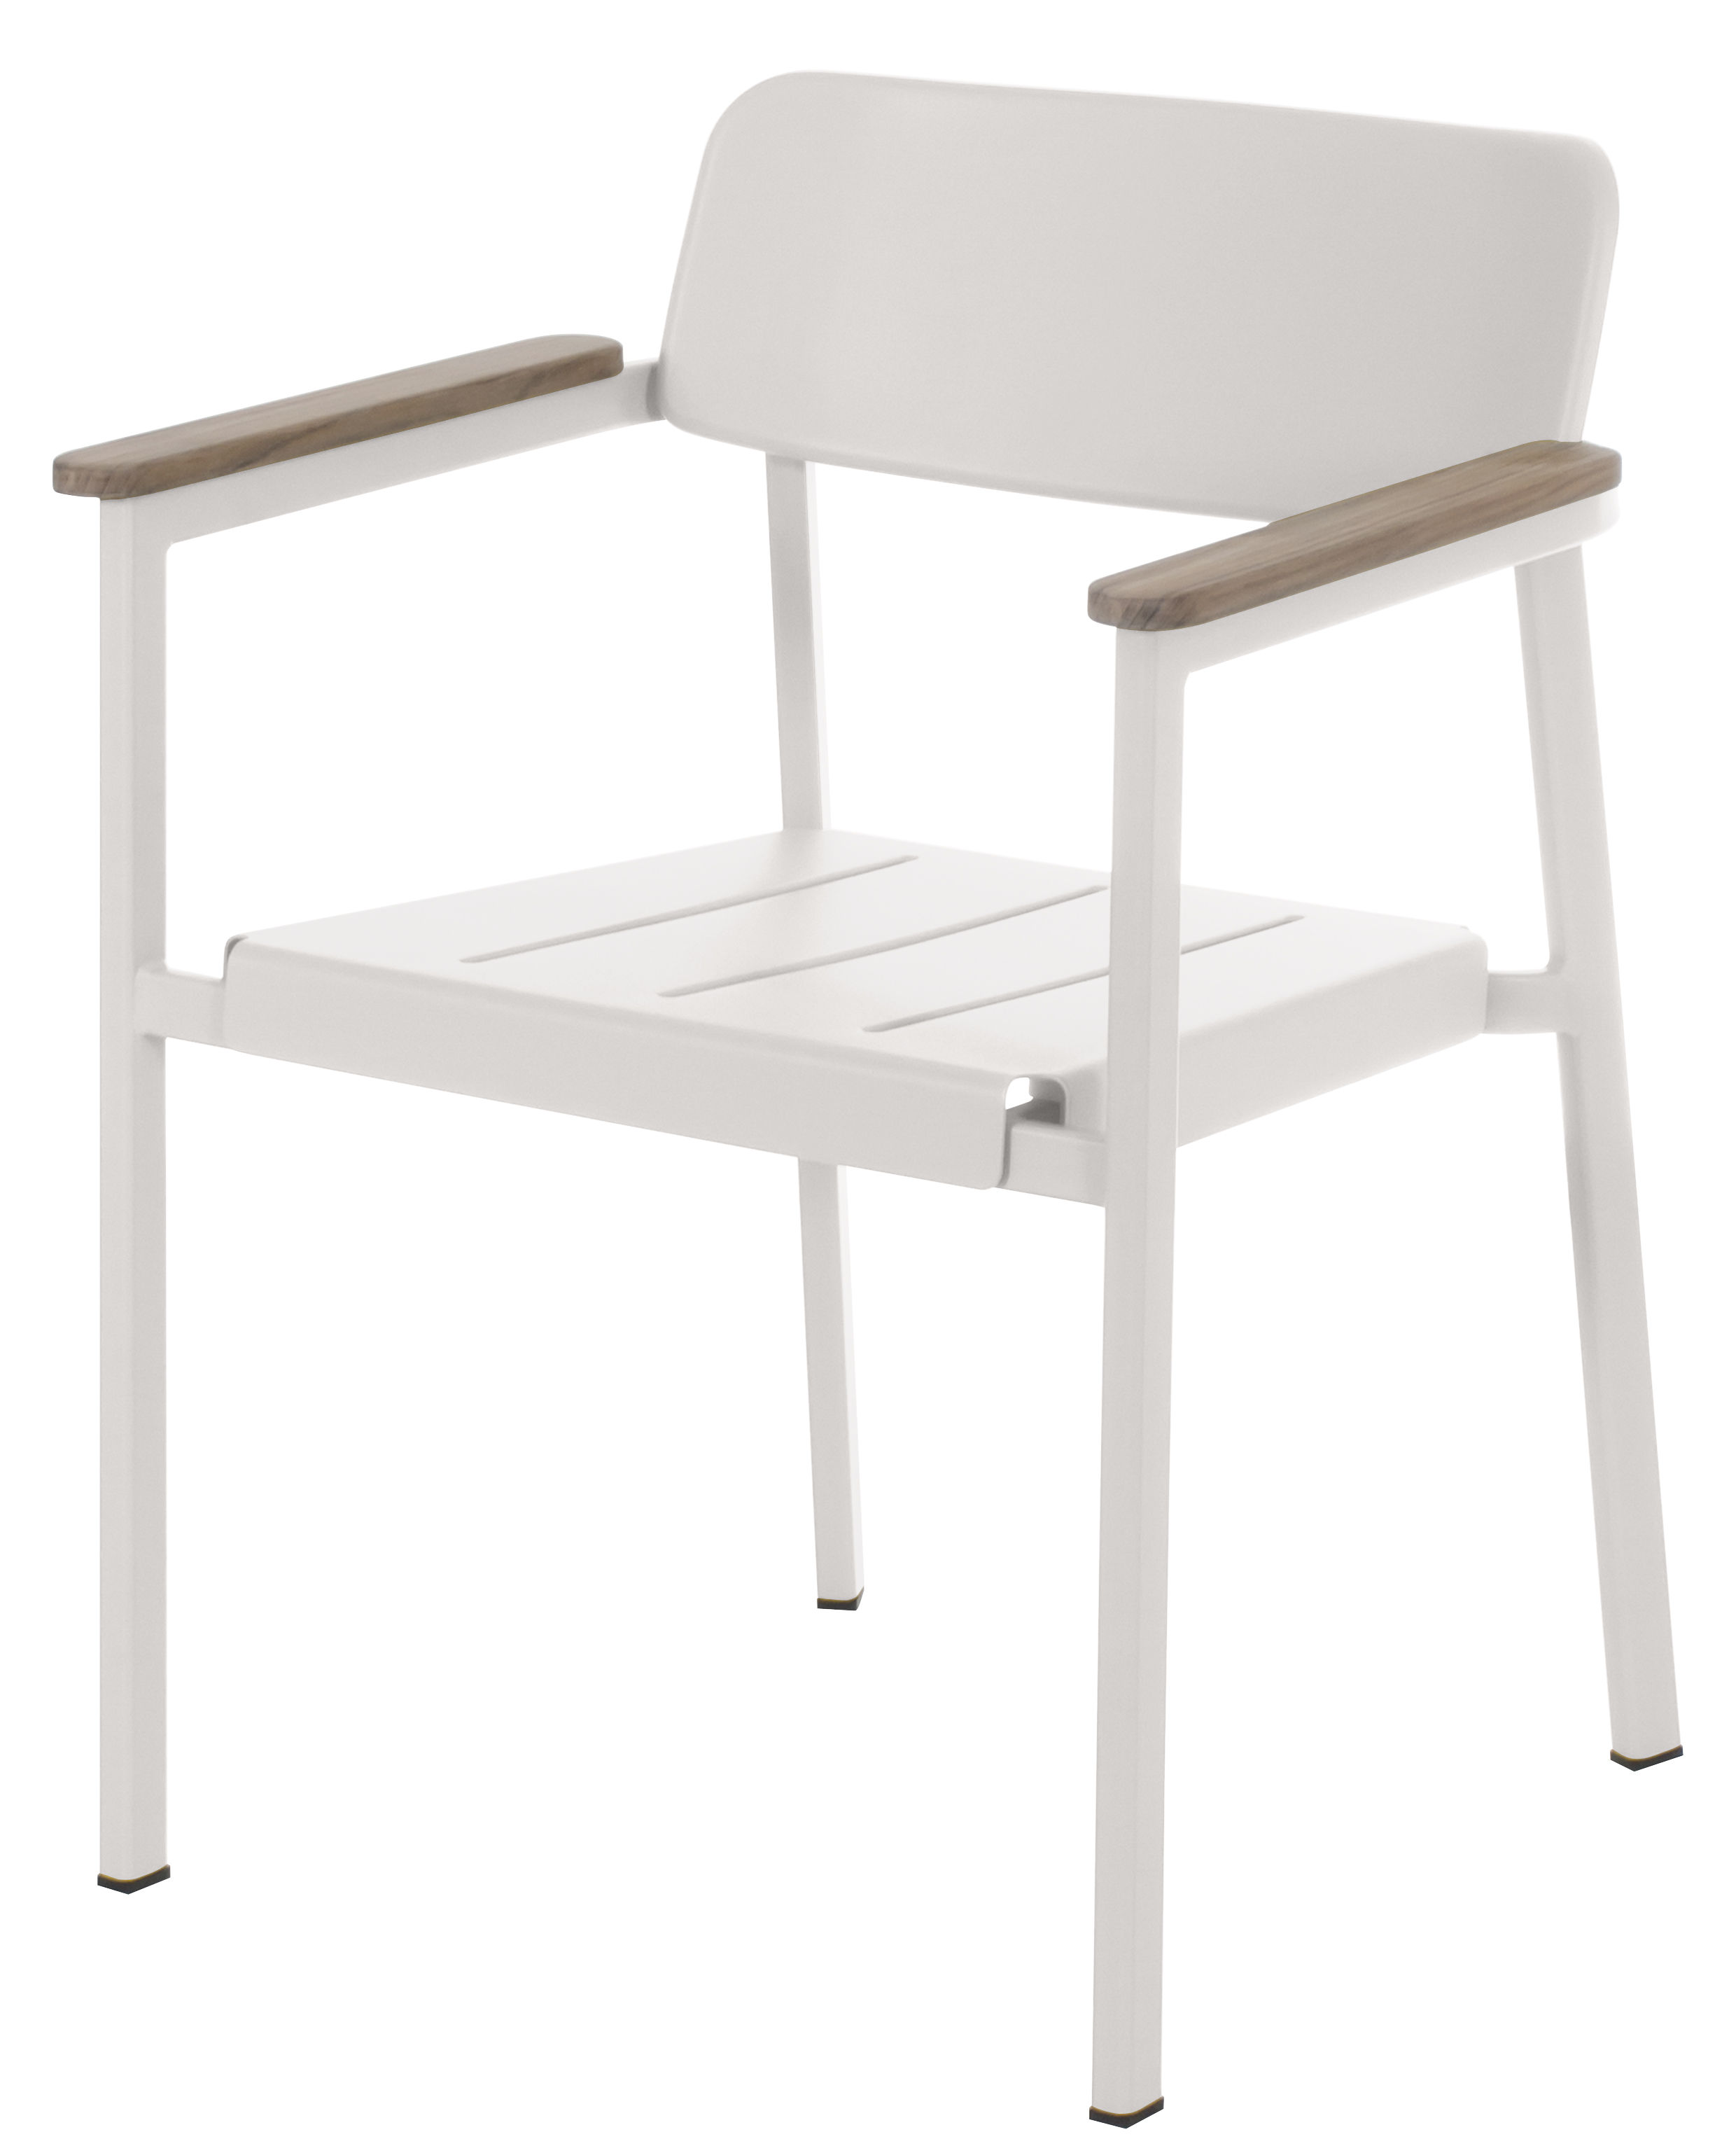 fauteuil empilable shine m tal accoudoirs bois blanc accoudoirs teck emu made in design. Black Bedroom Furniture Sets. Home Design Ideas